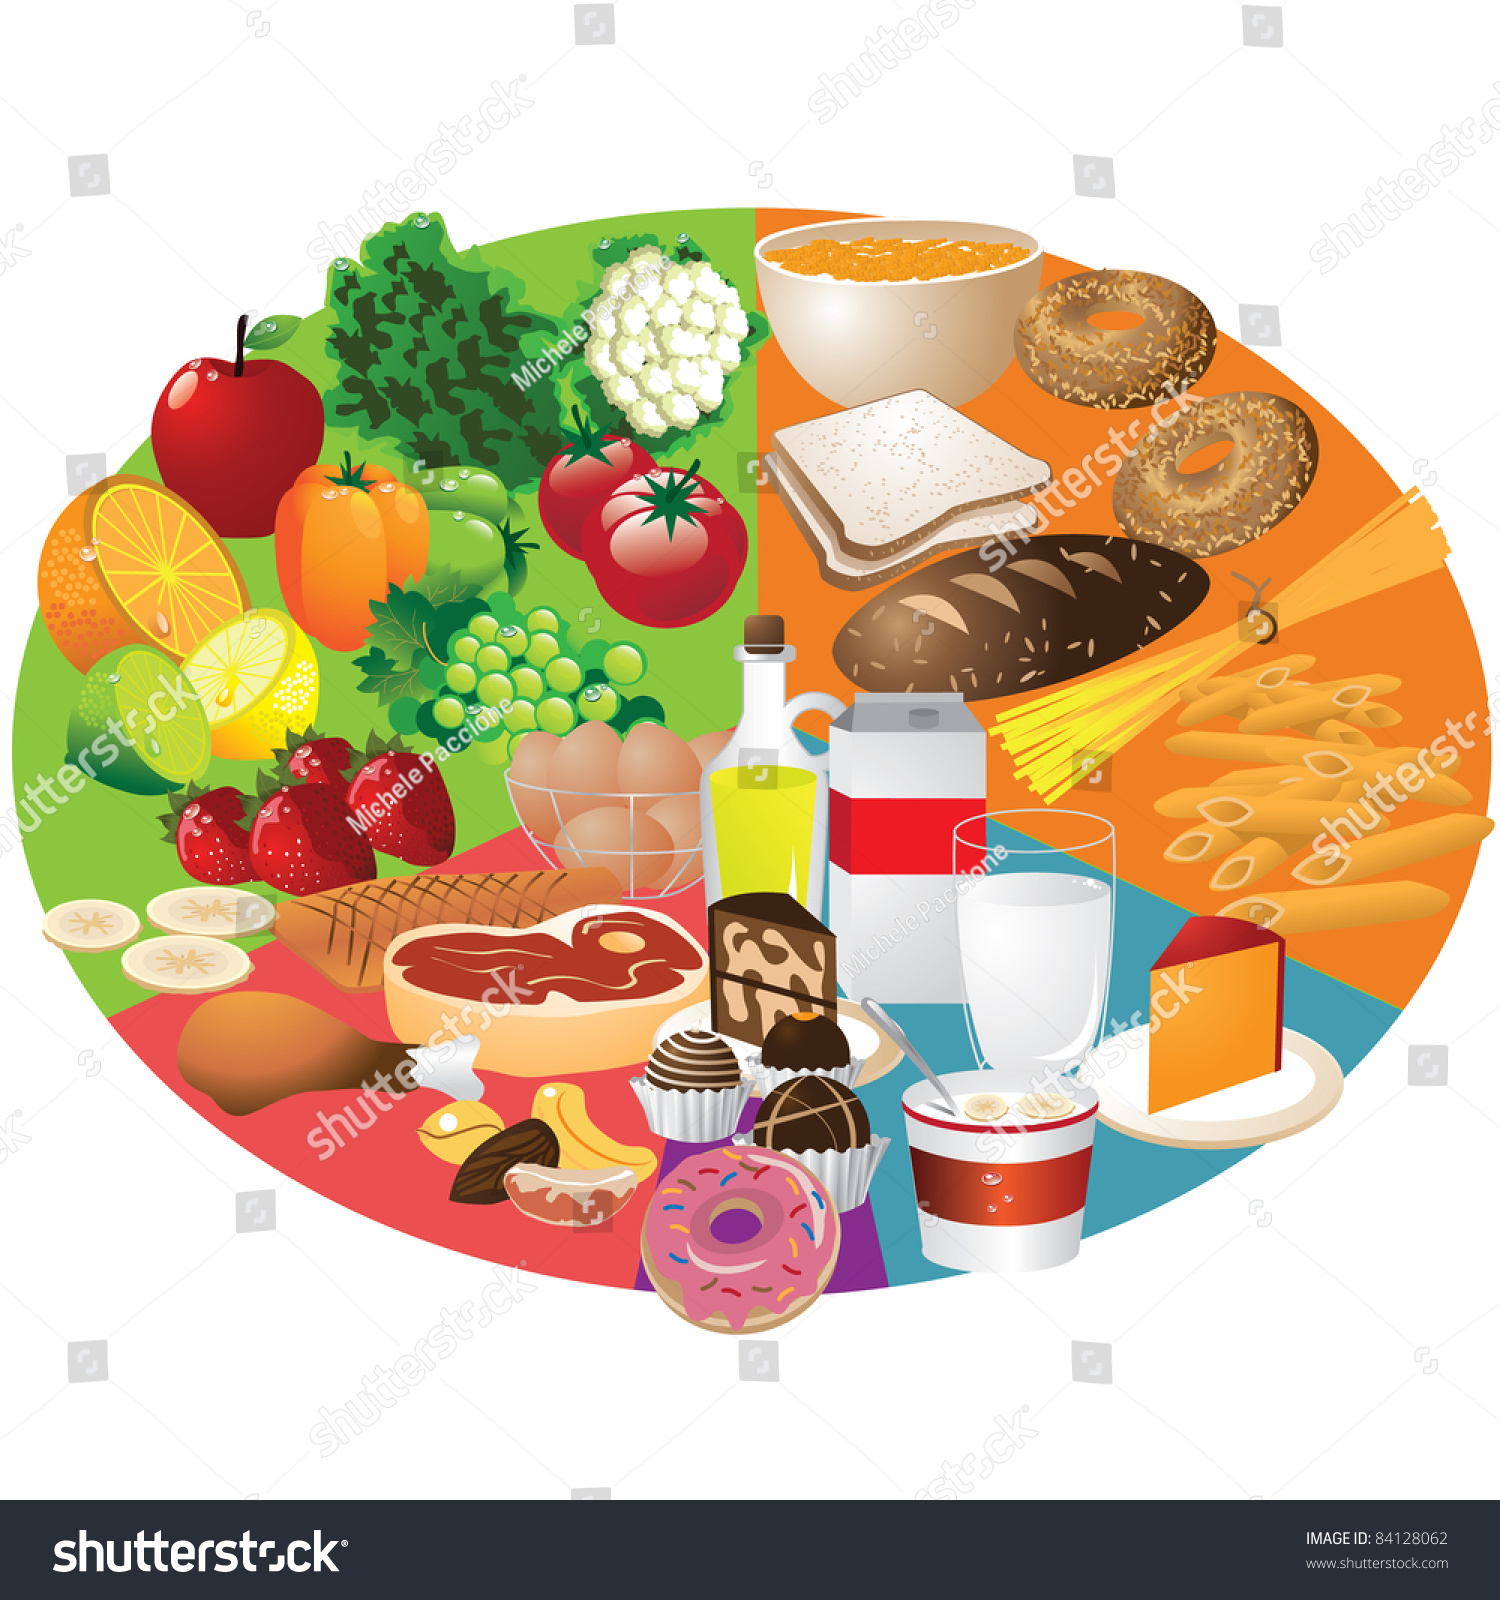 Food Groups Food Groups Arranged New Stock Vector